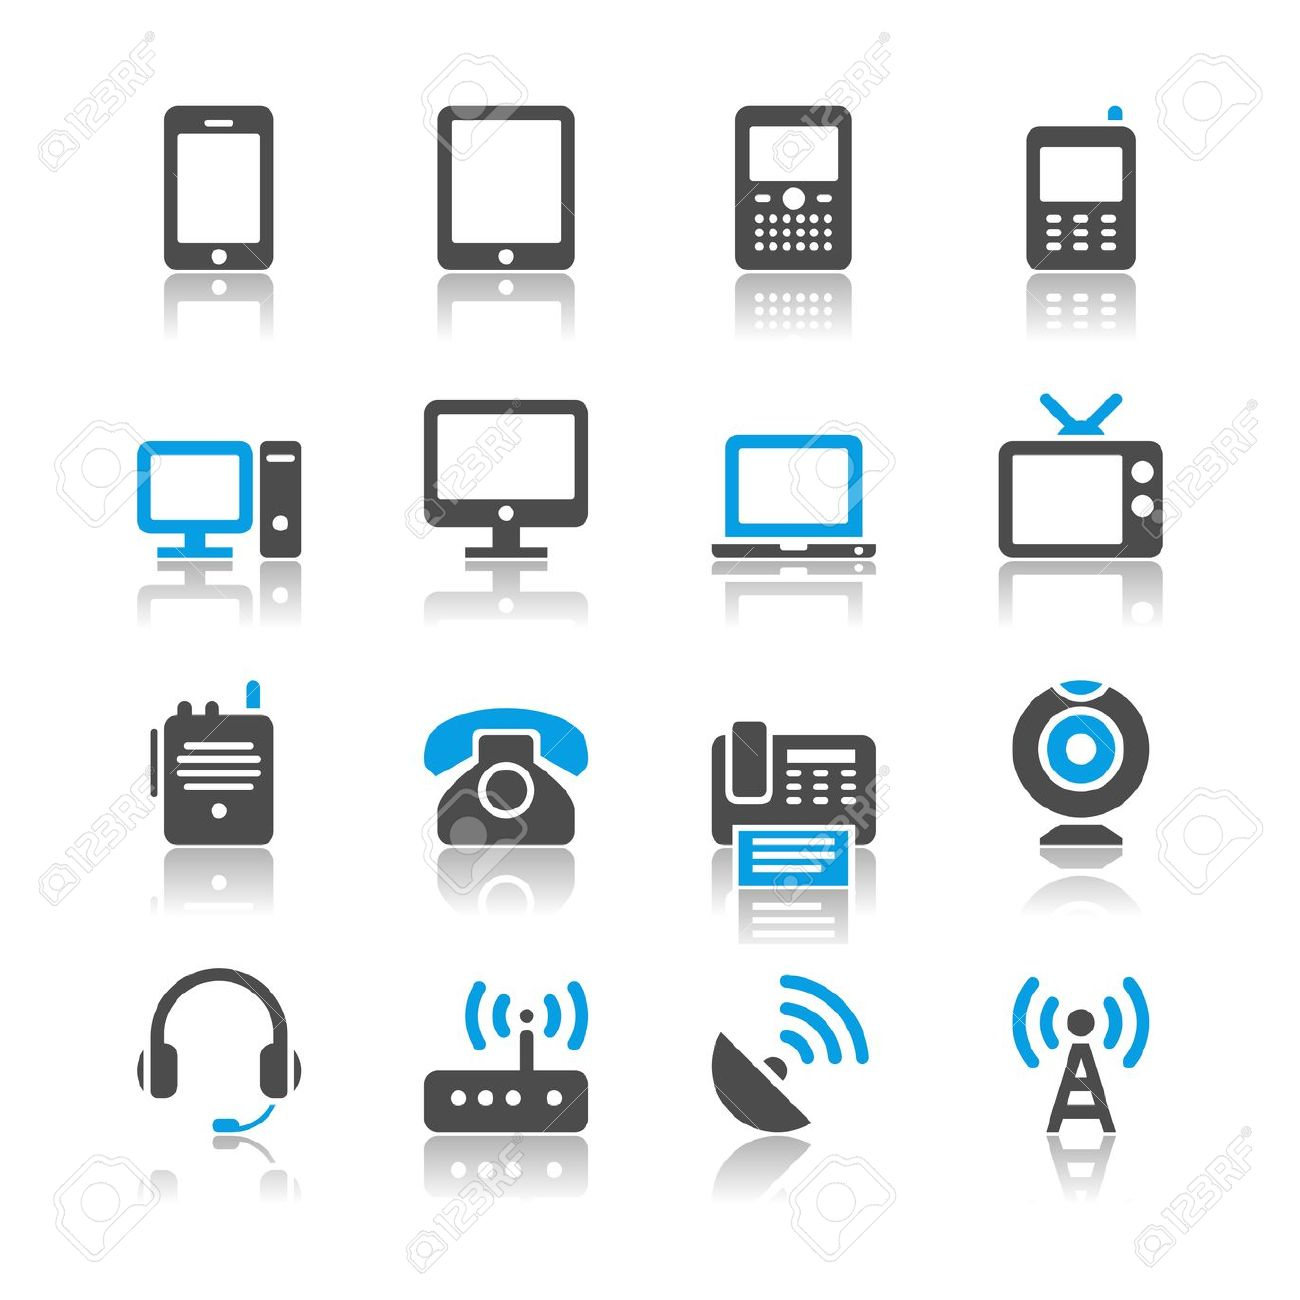 Communication Devices Clipart.